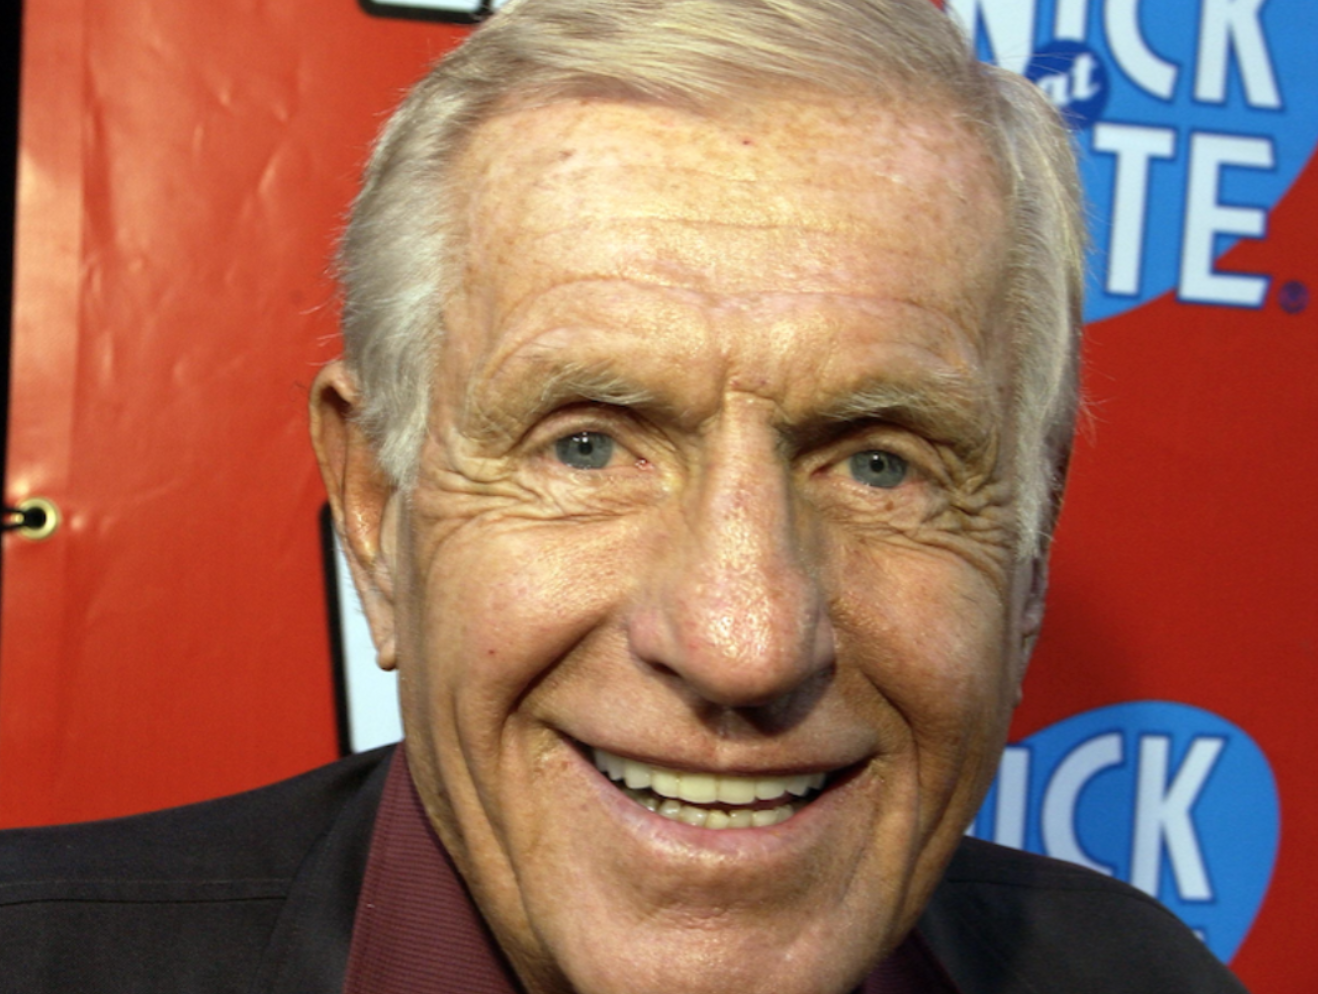 TMZ: 'Coach' Star Jerry Van Dyke Dead at 86